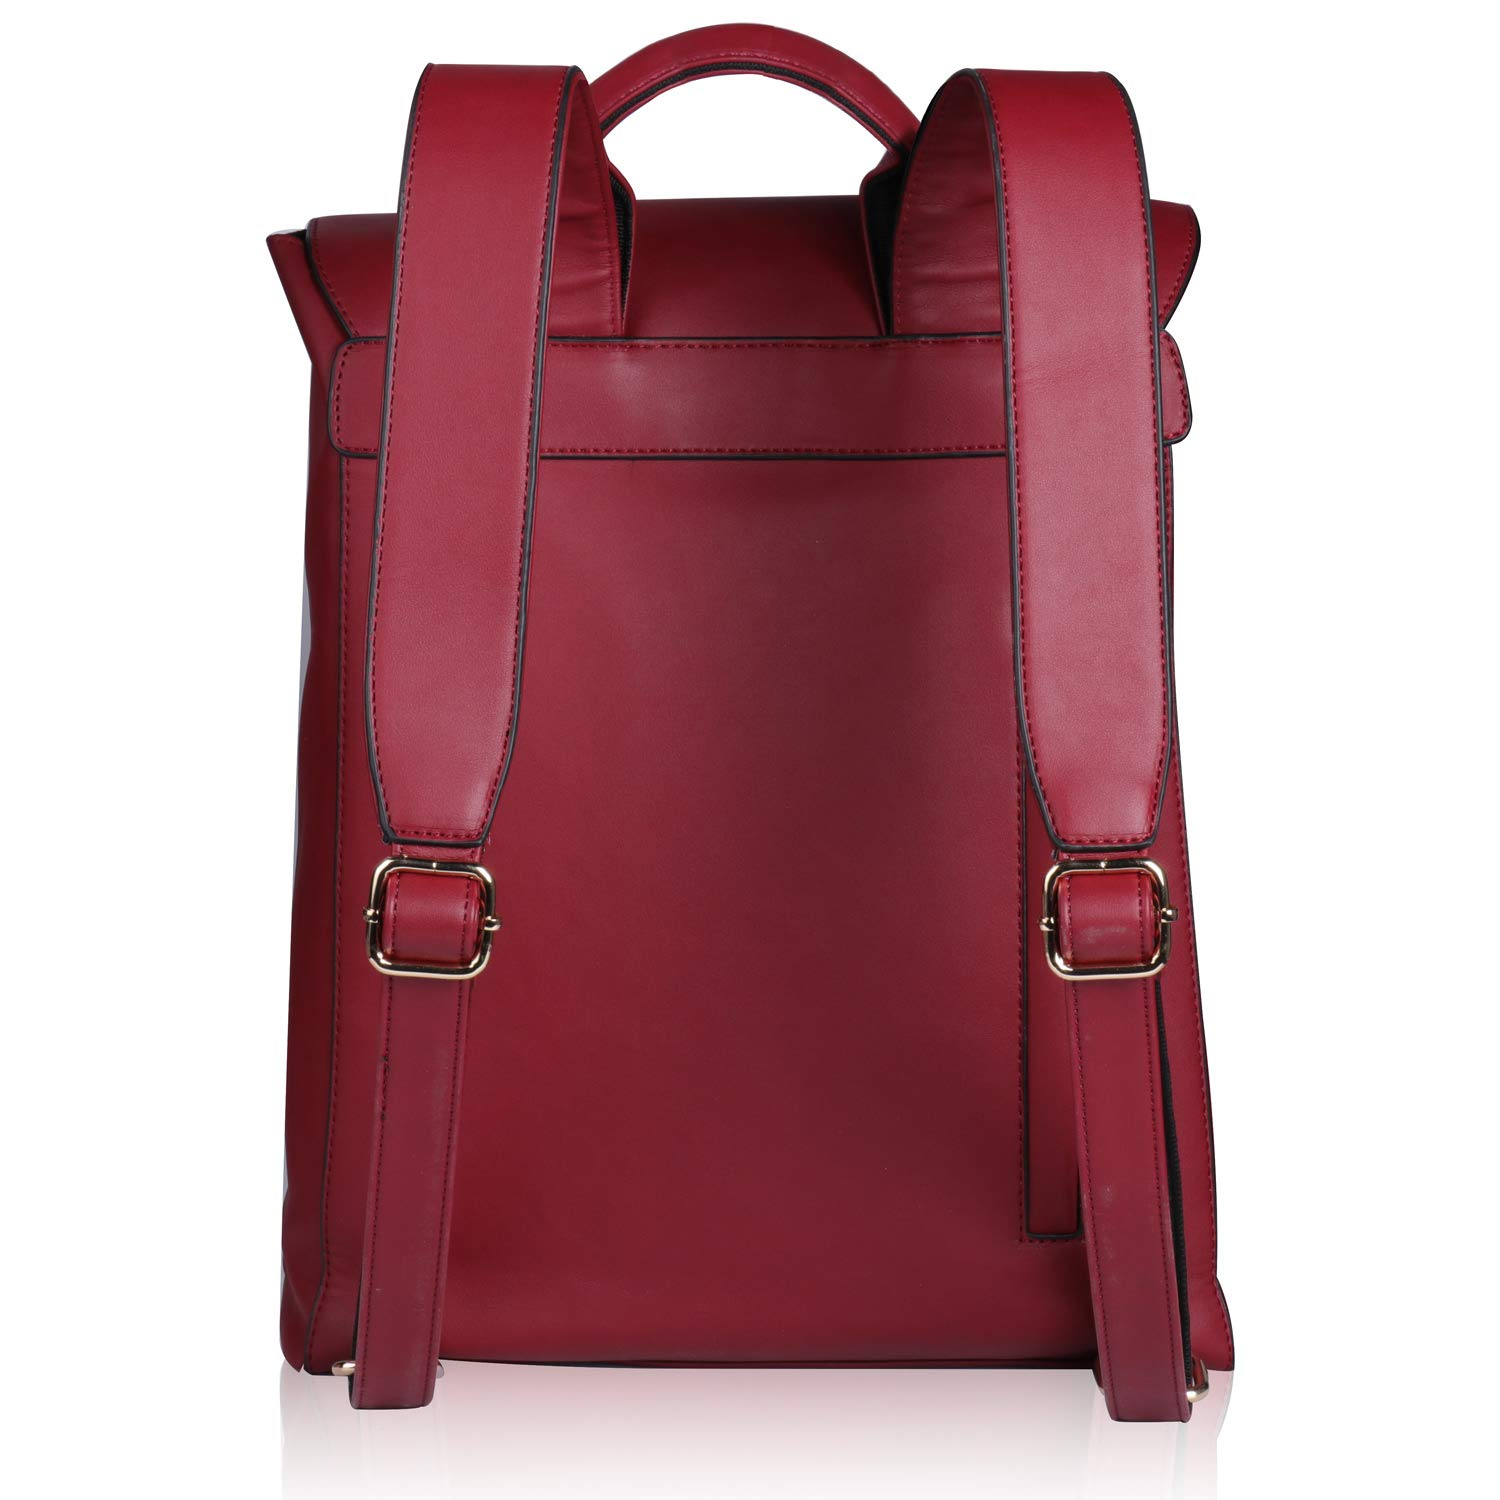 Estarer Women Fashion Leather Backpack for Travel Work College Laides PU Leather Backpack by Estarer (Image #5)